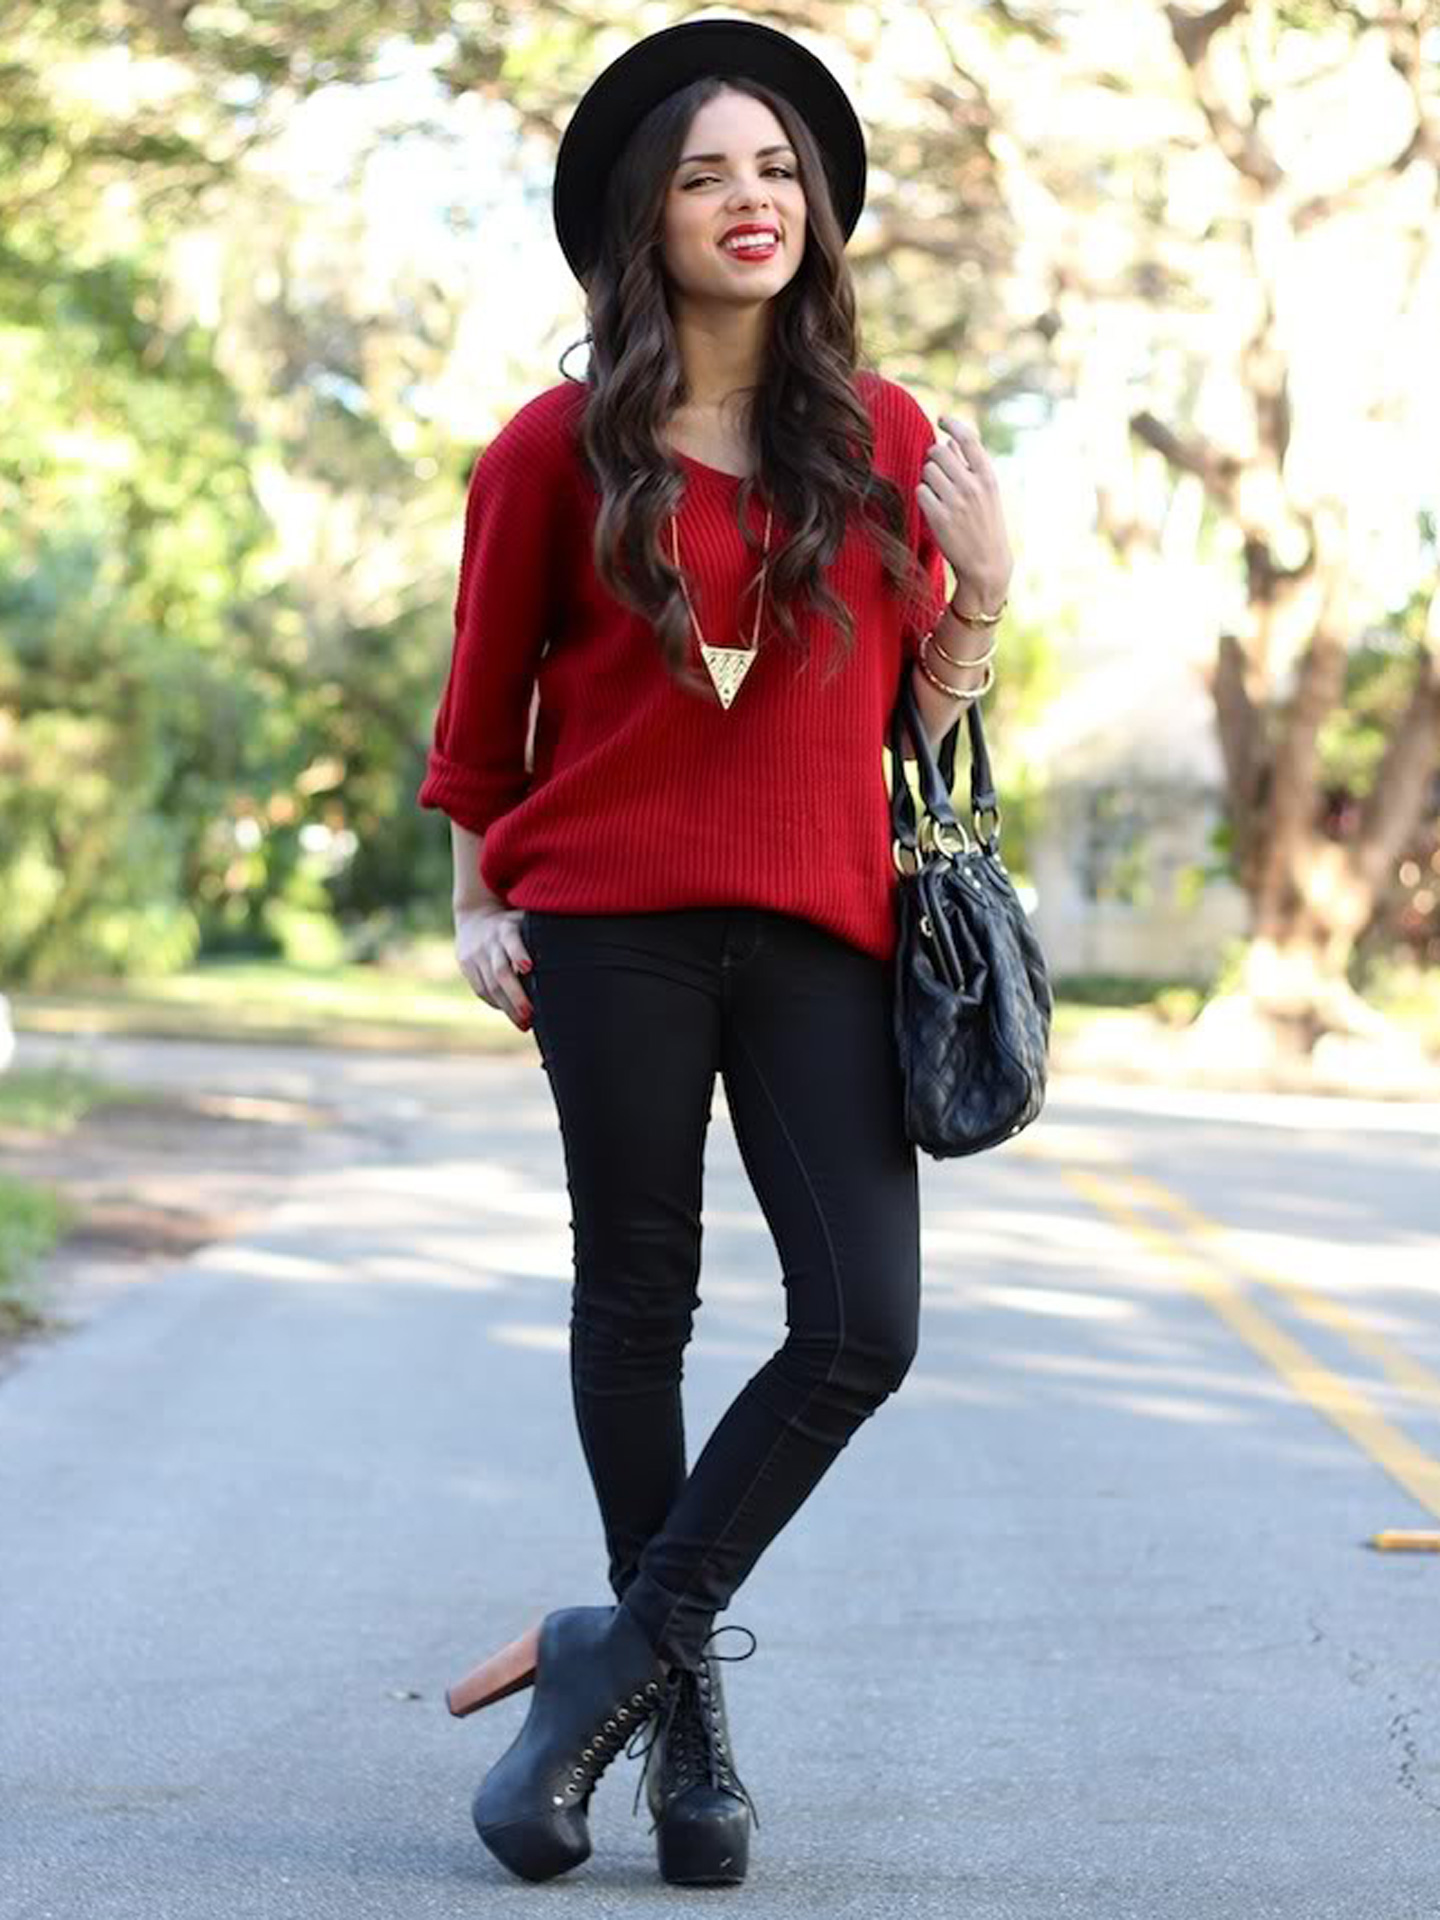 Oversized Red Sweater - Holiday Outfit Ideas